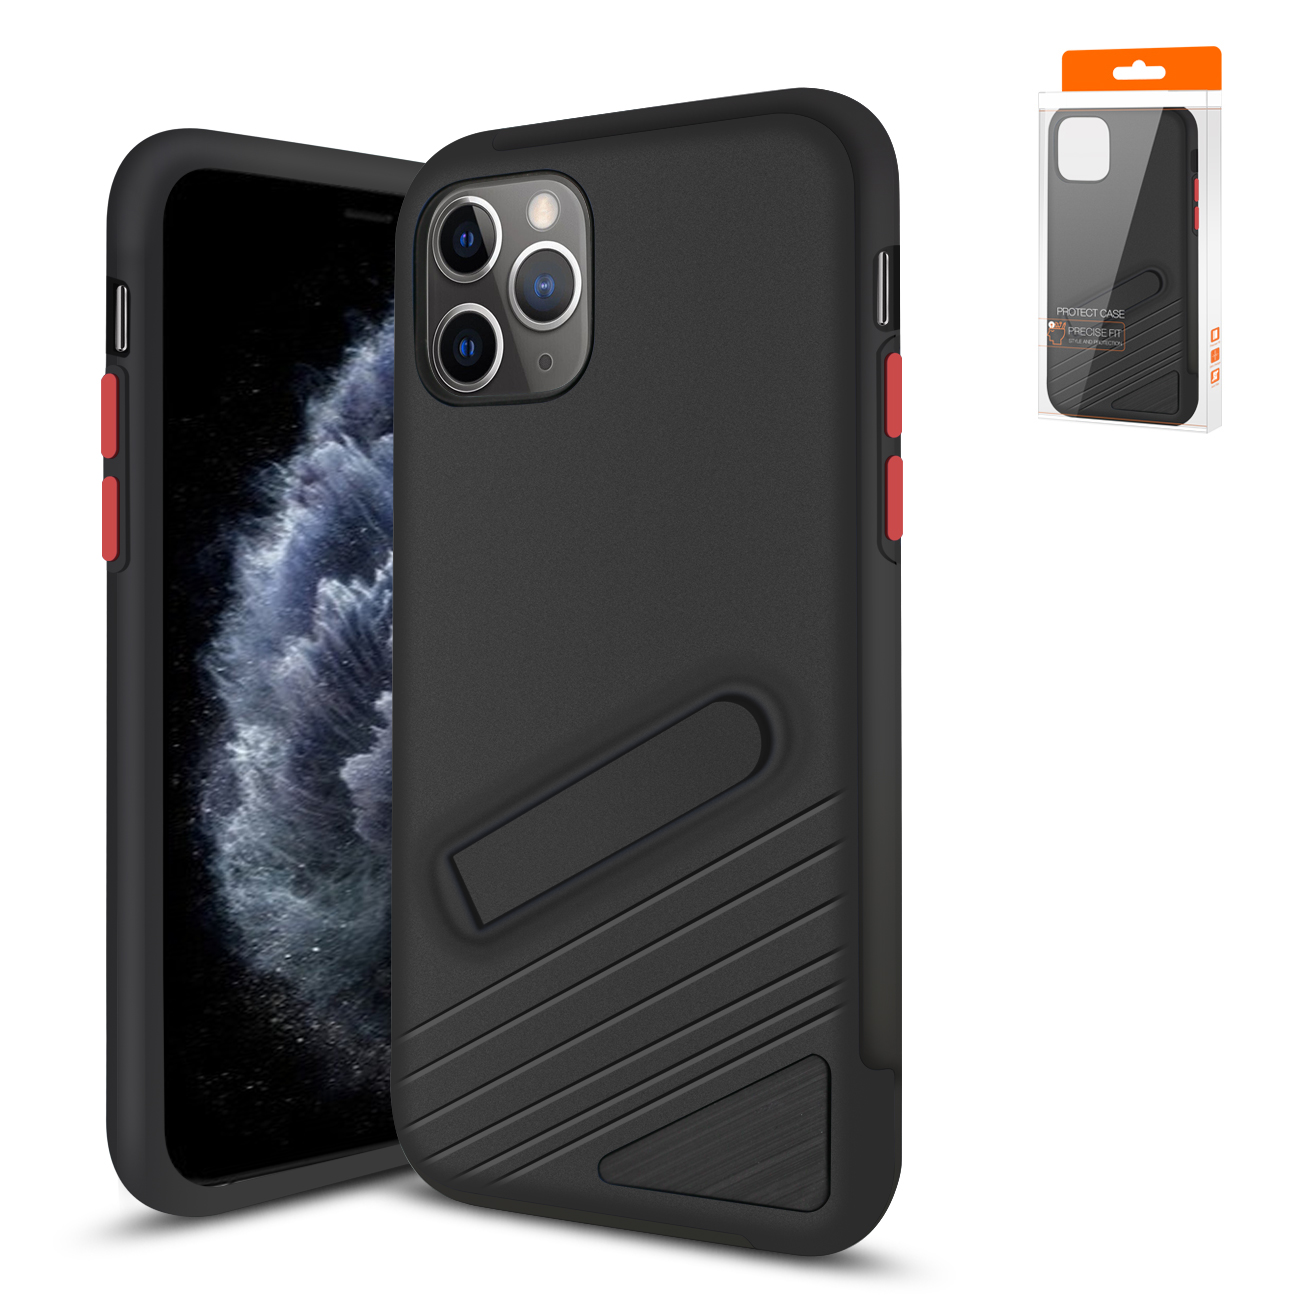 Reiko Apple iPhone 11 Pro Armor Cases In Black